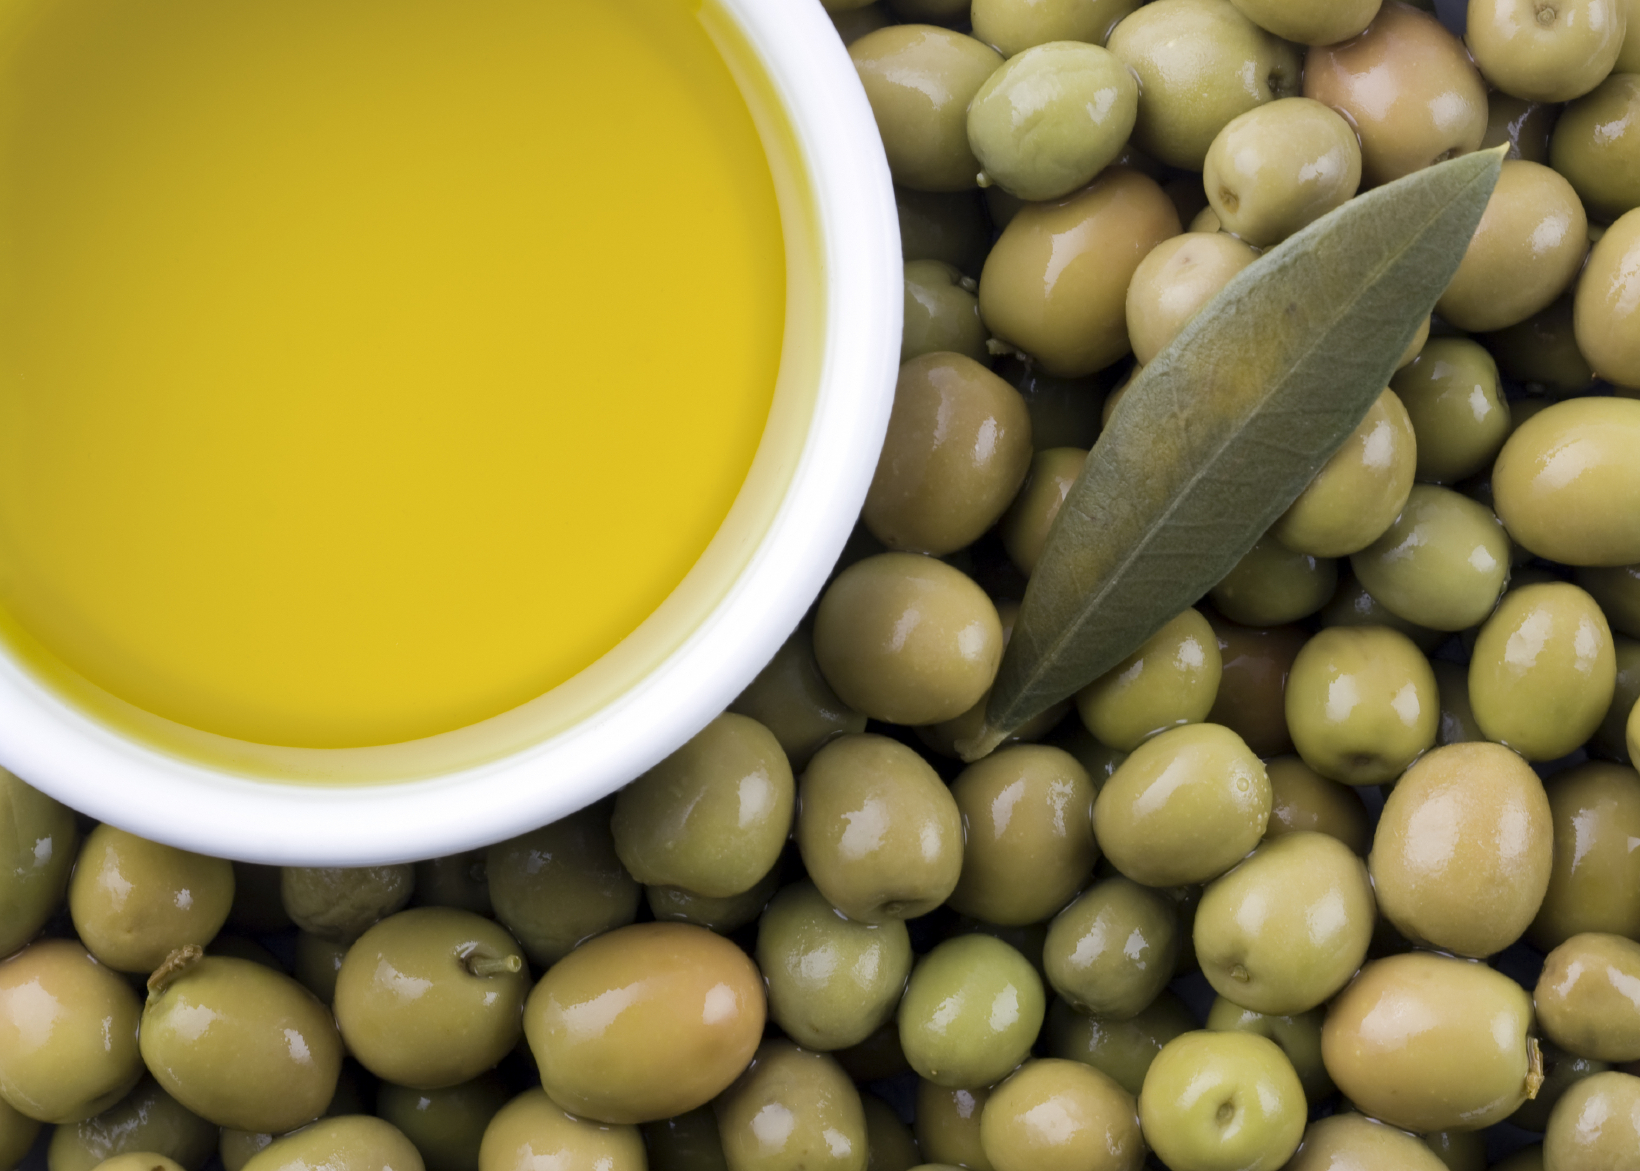 http://drjanet.tv/food/is-the-secret-to-olive-oil-in-its-scent/